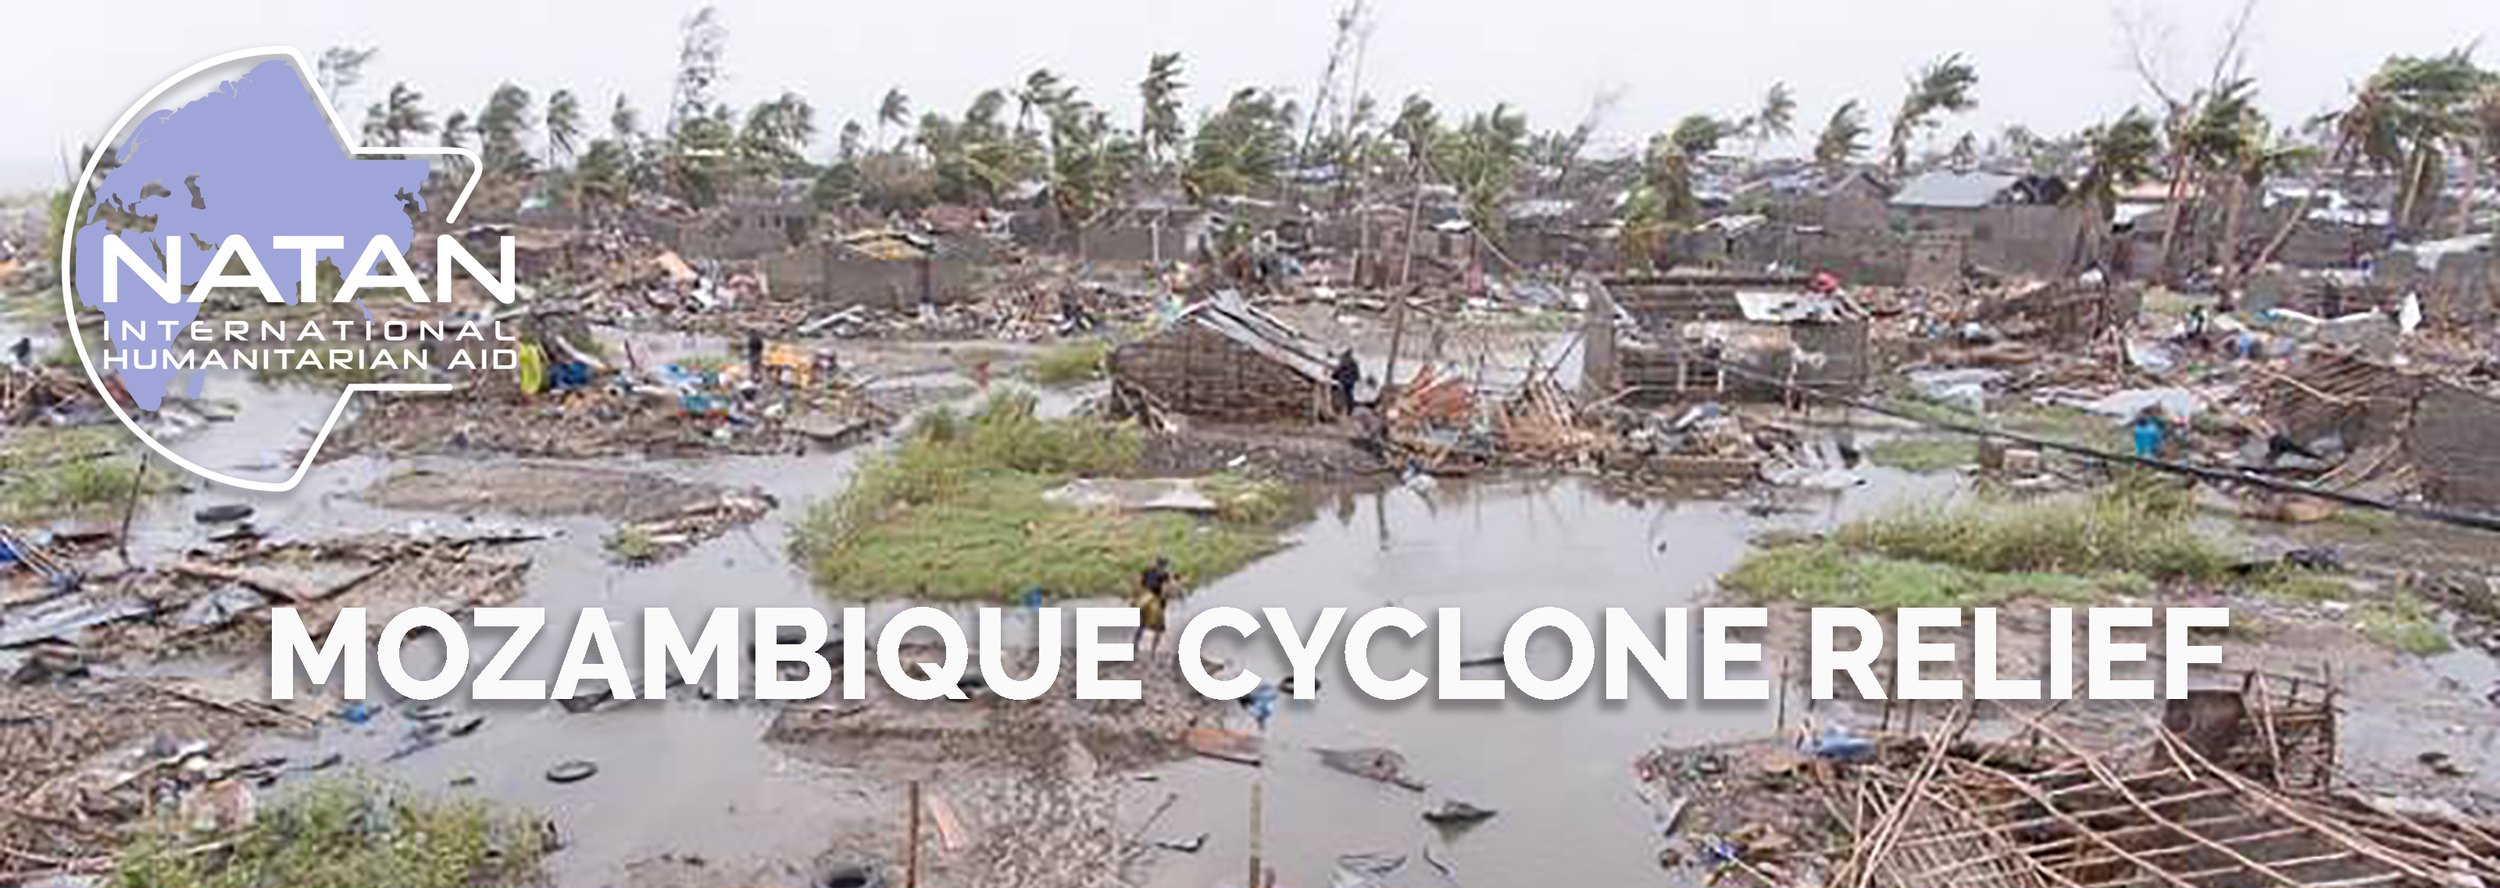 MozambiqueCyclone.png